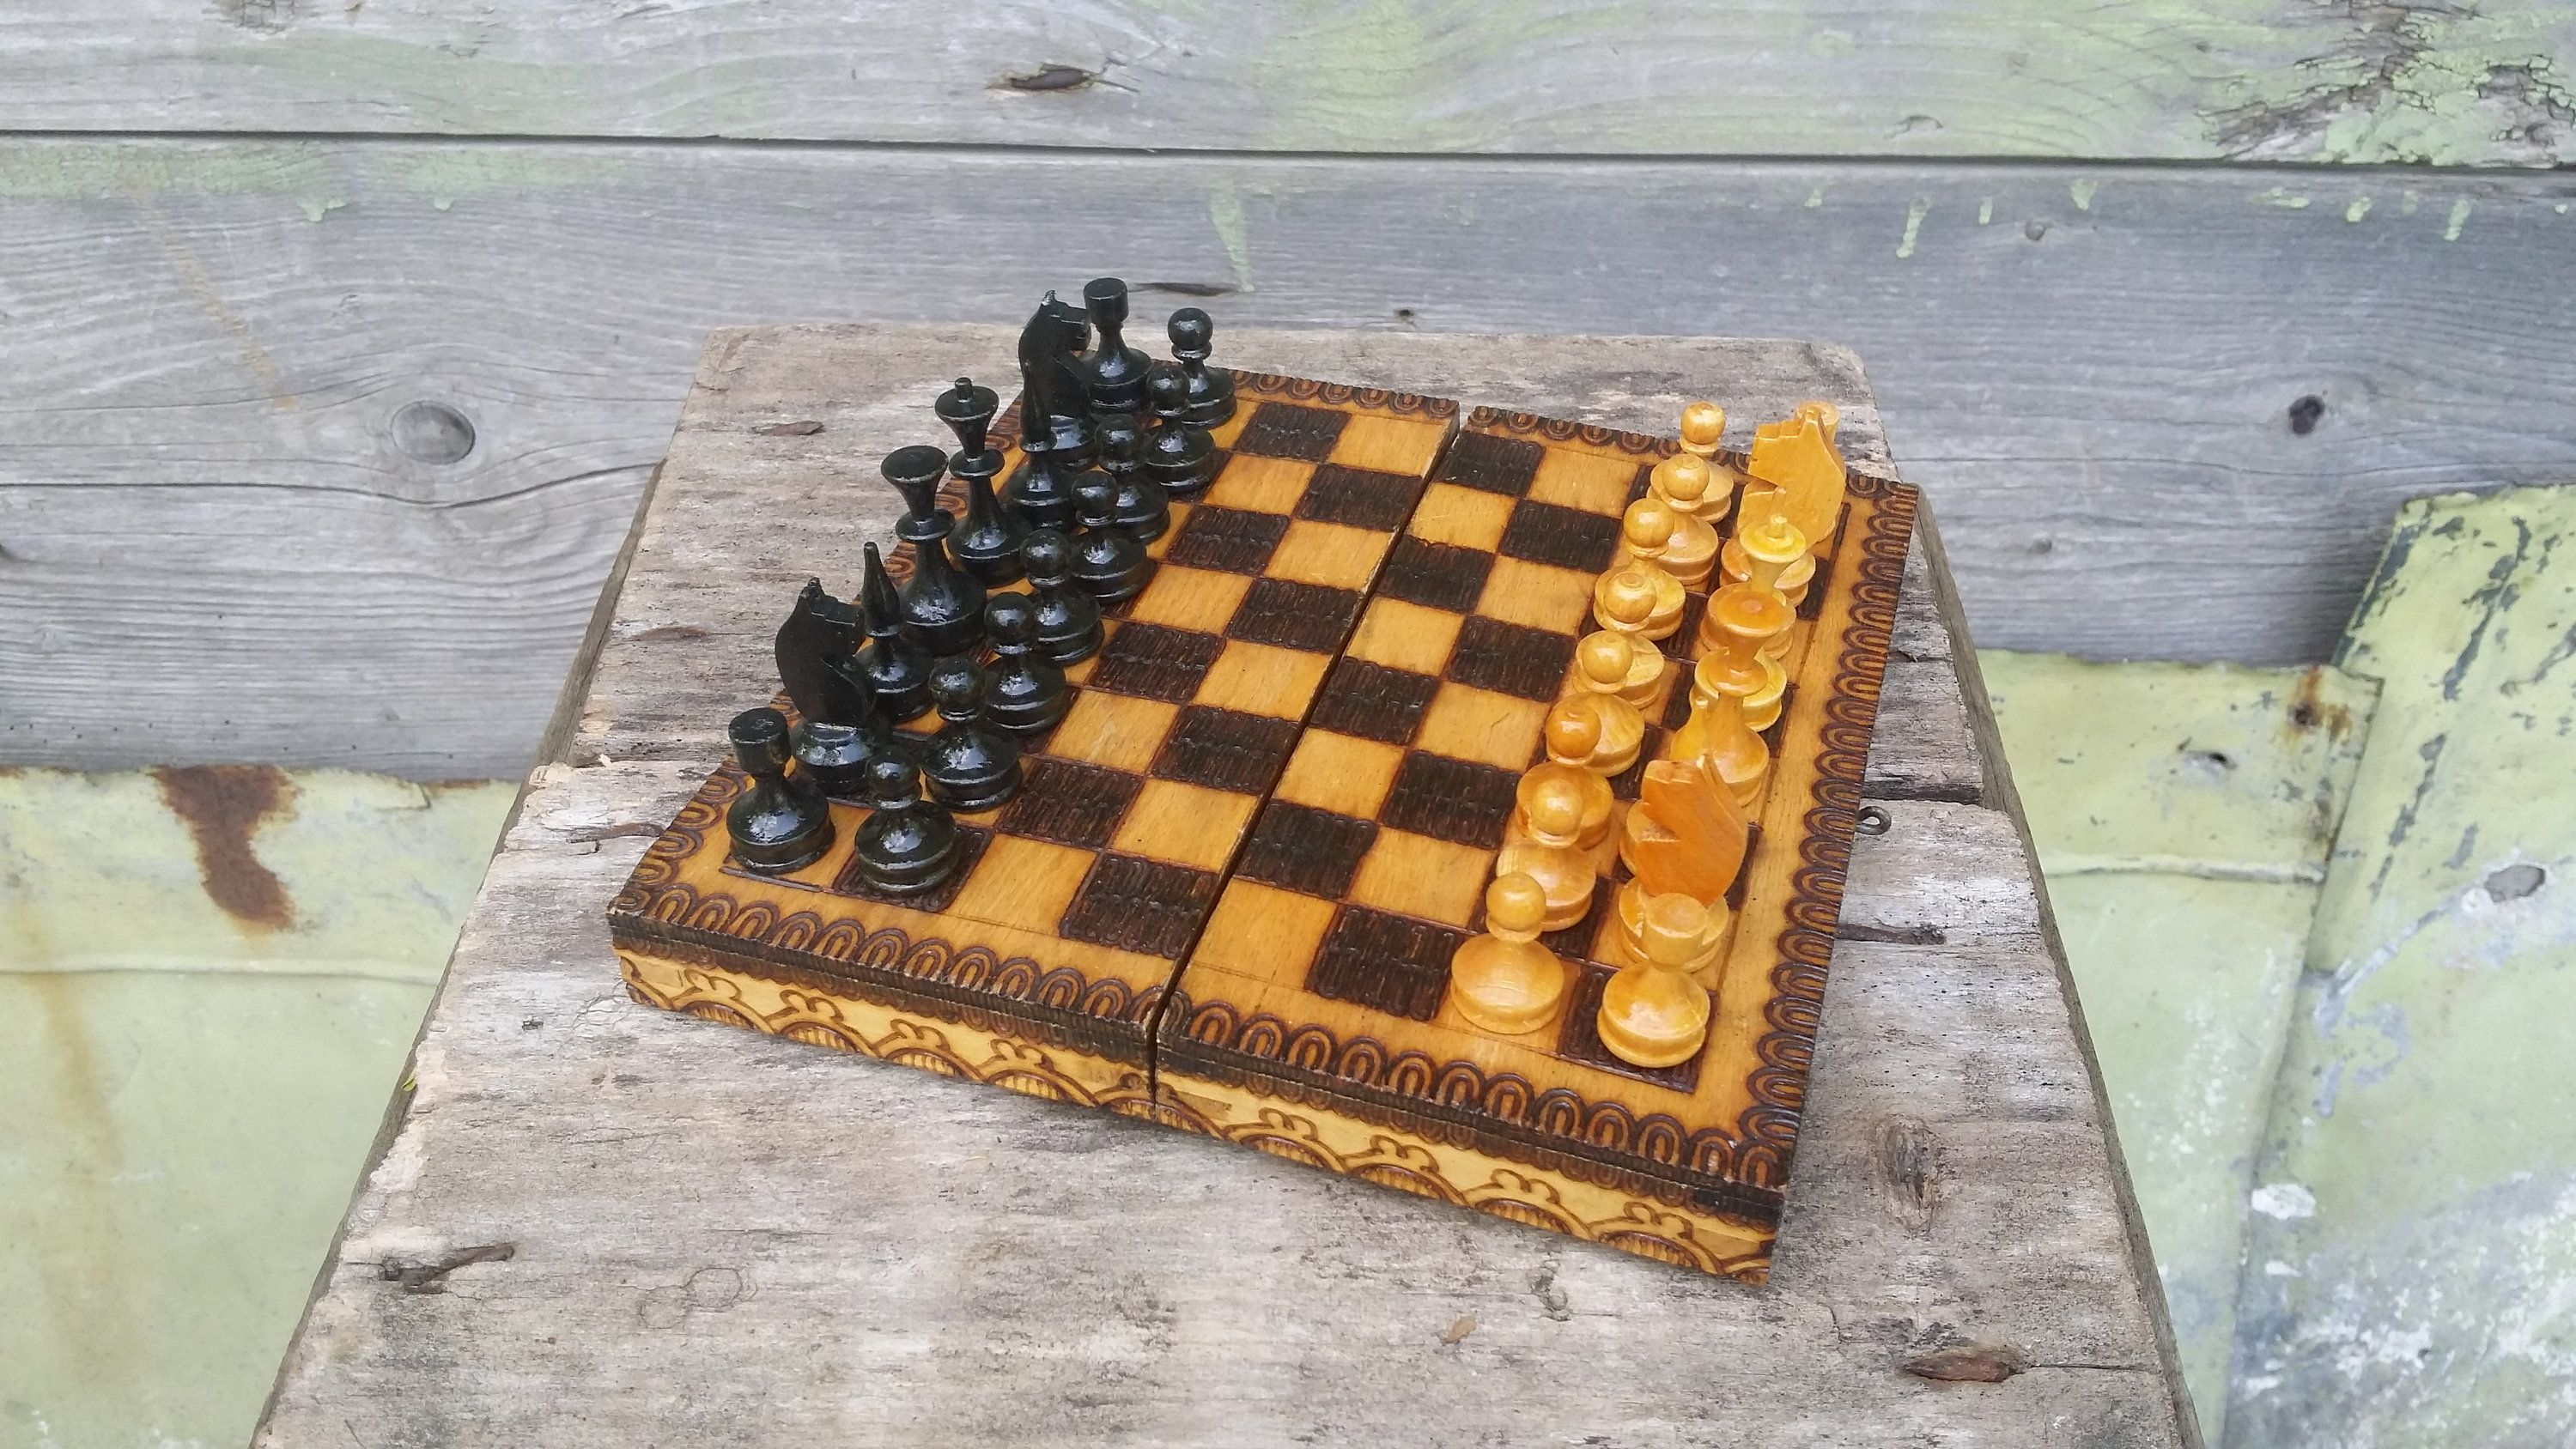 Vintage Chess Set Wooden Chess Small Chess Set Portable Chess Board Game Table Chess Set Tra Fun Board Games Building Games For Kids Funny Games For Kids